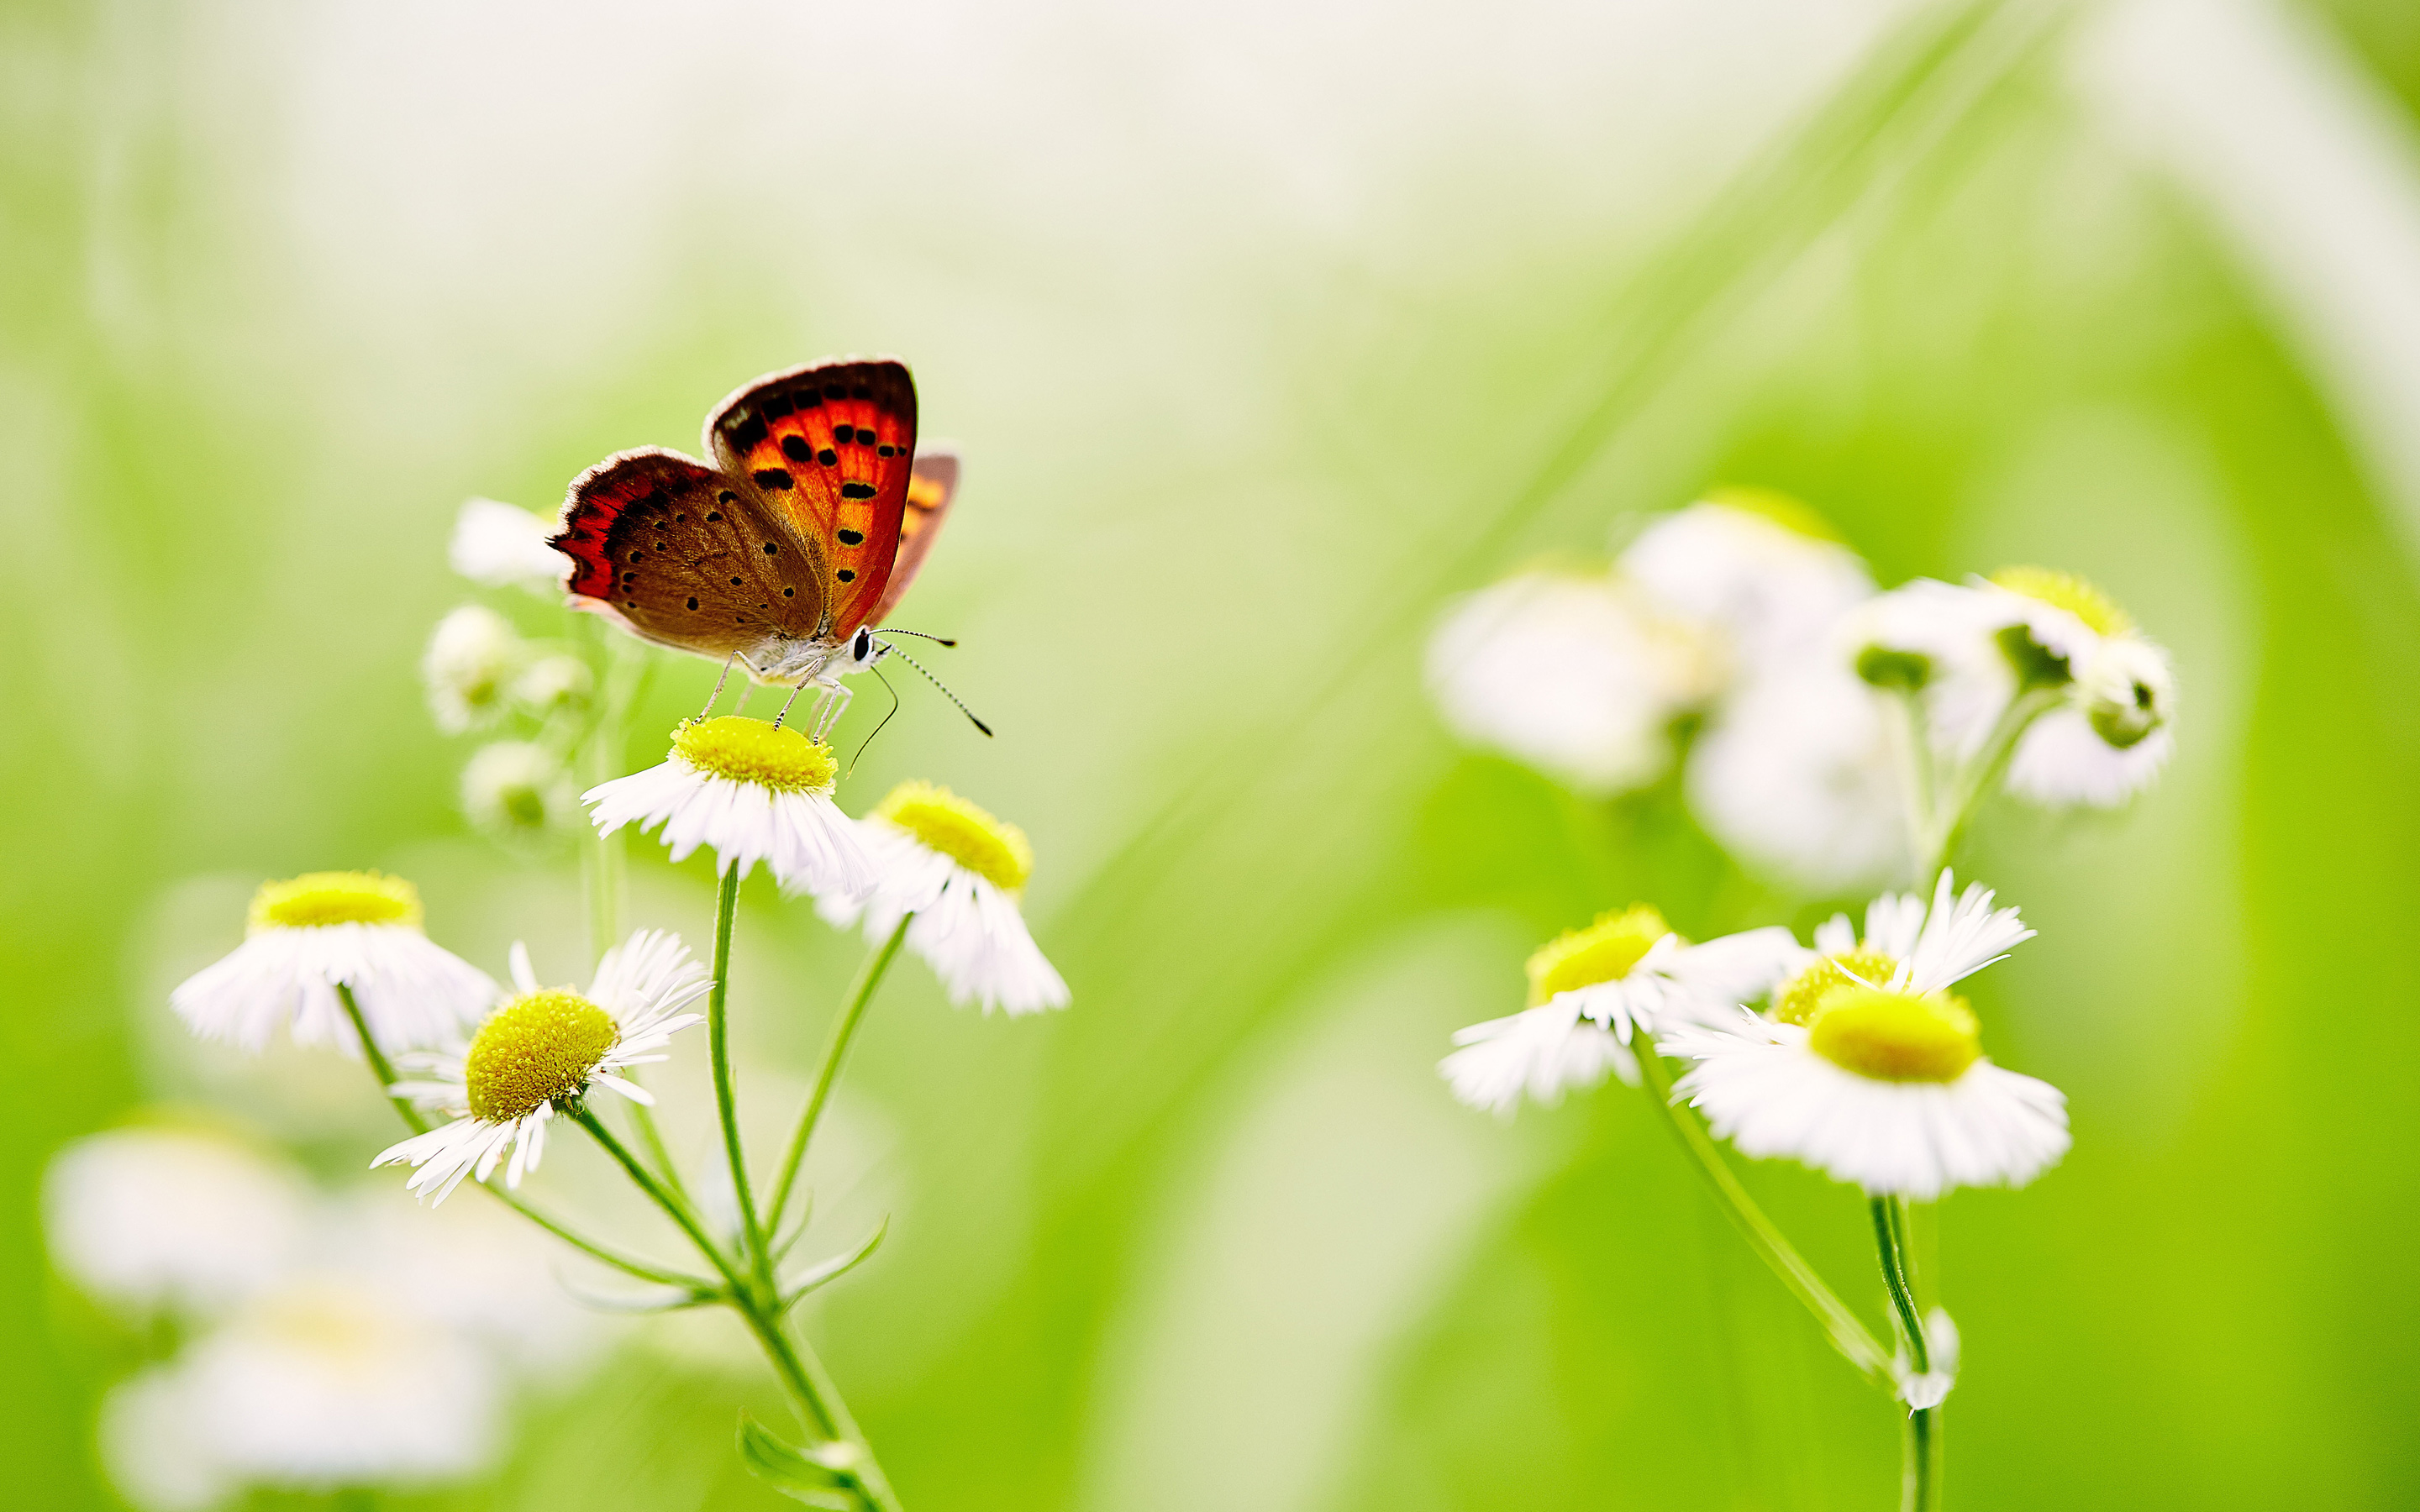 Butterfly over white daisies. обои скачать